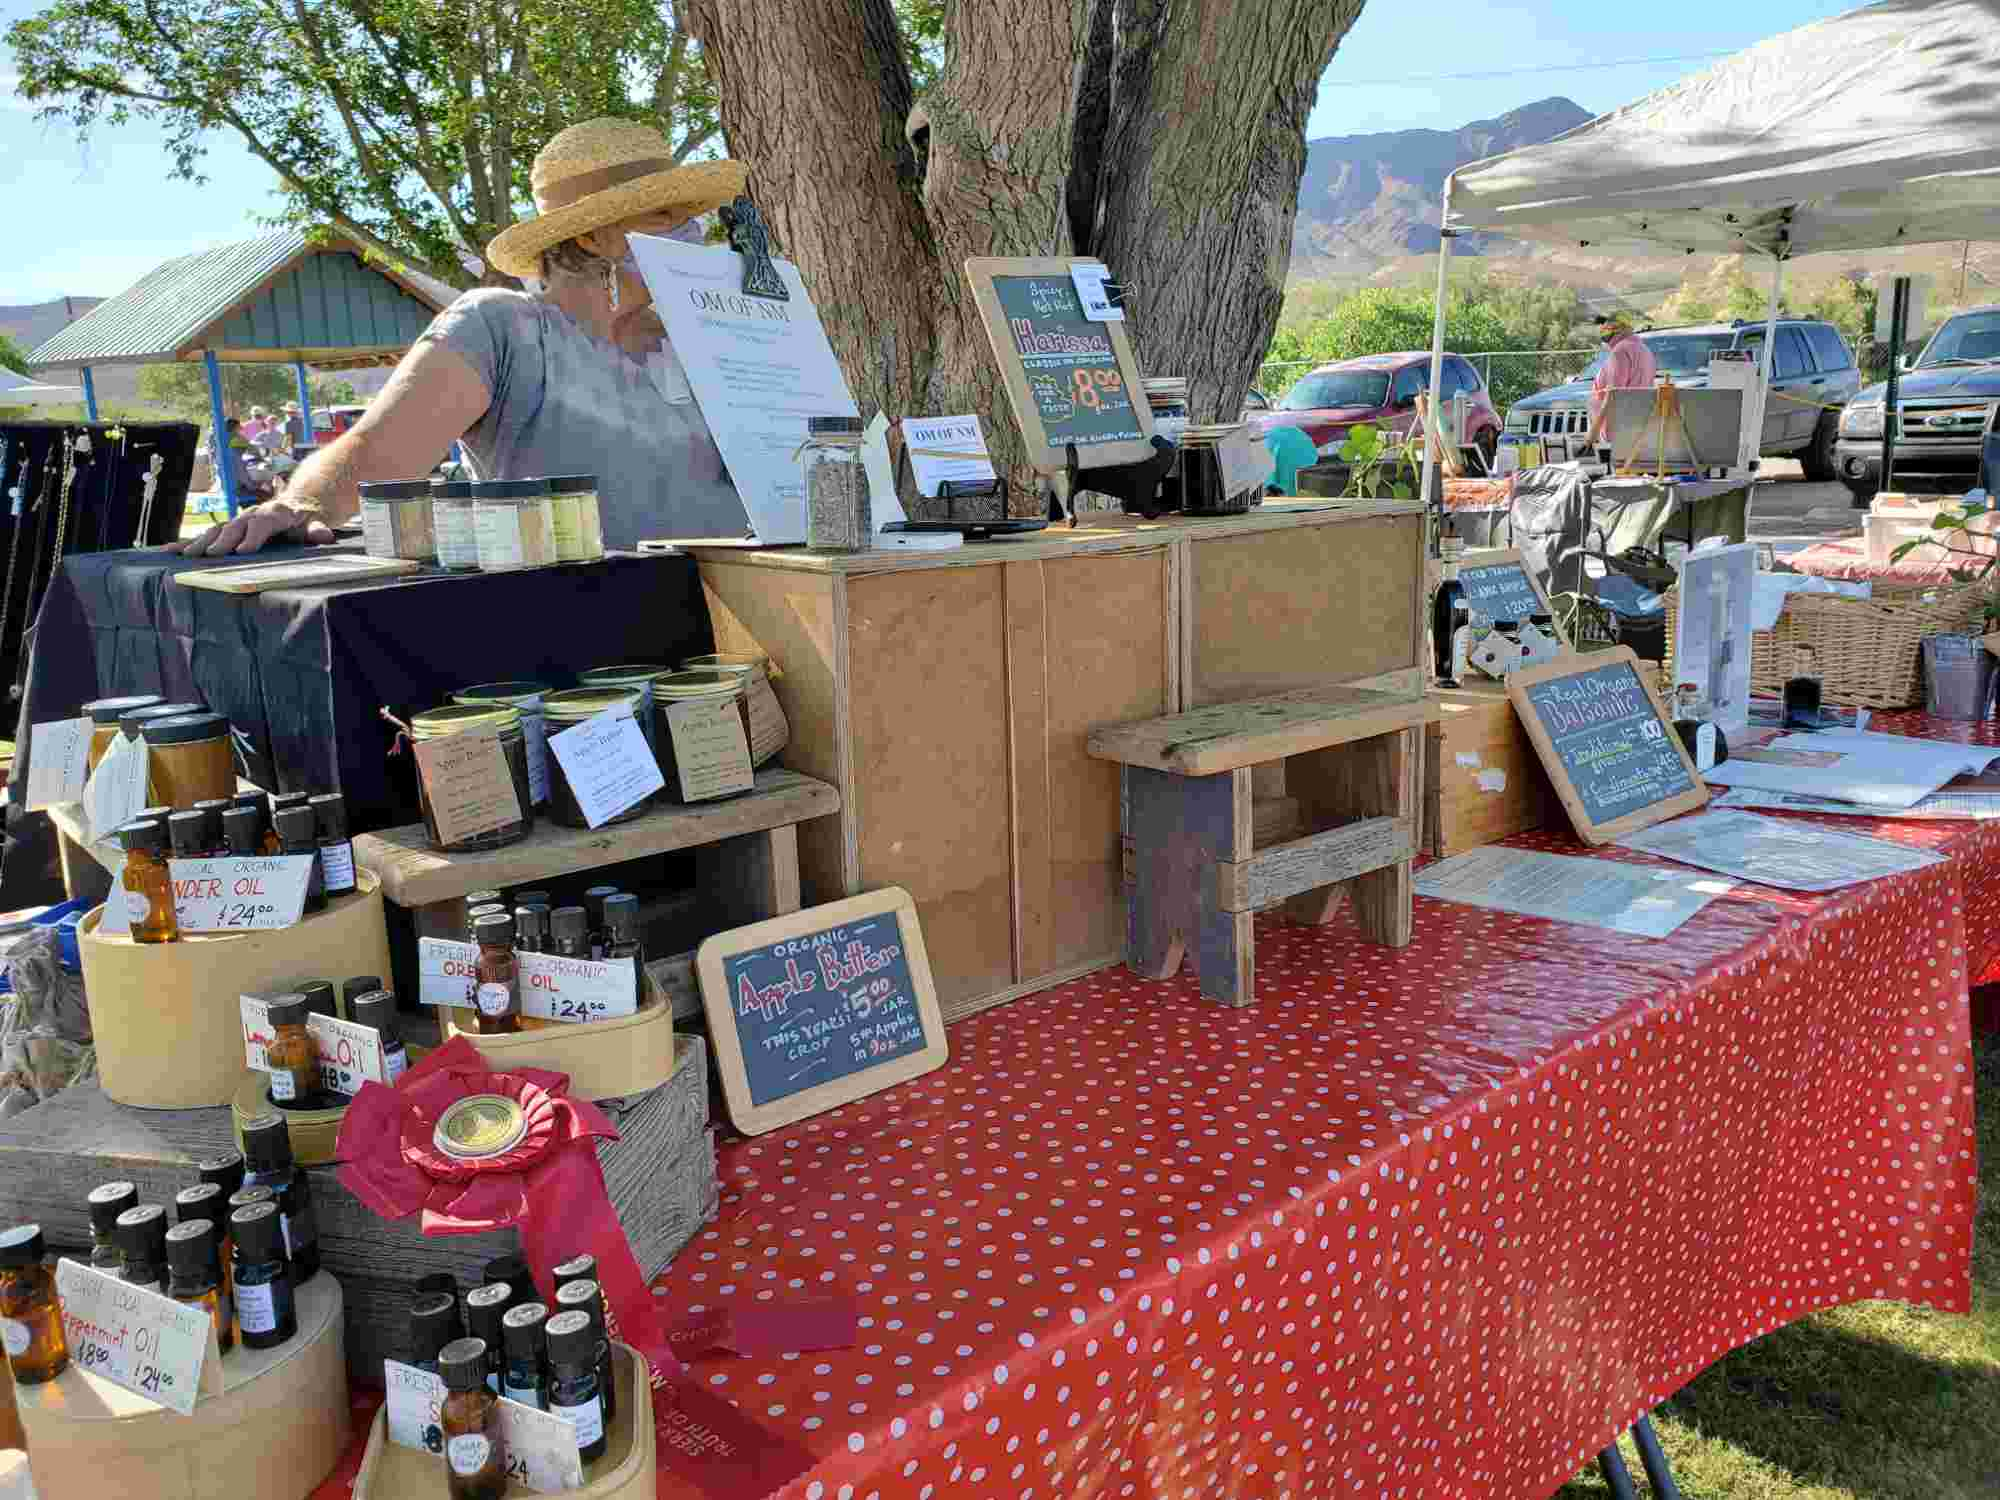 Old Monticello Farms booth at the Sierra County Farmers Market